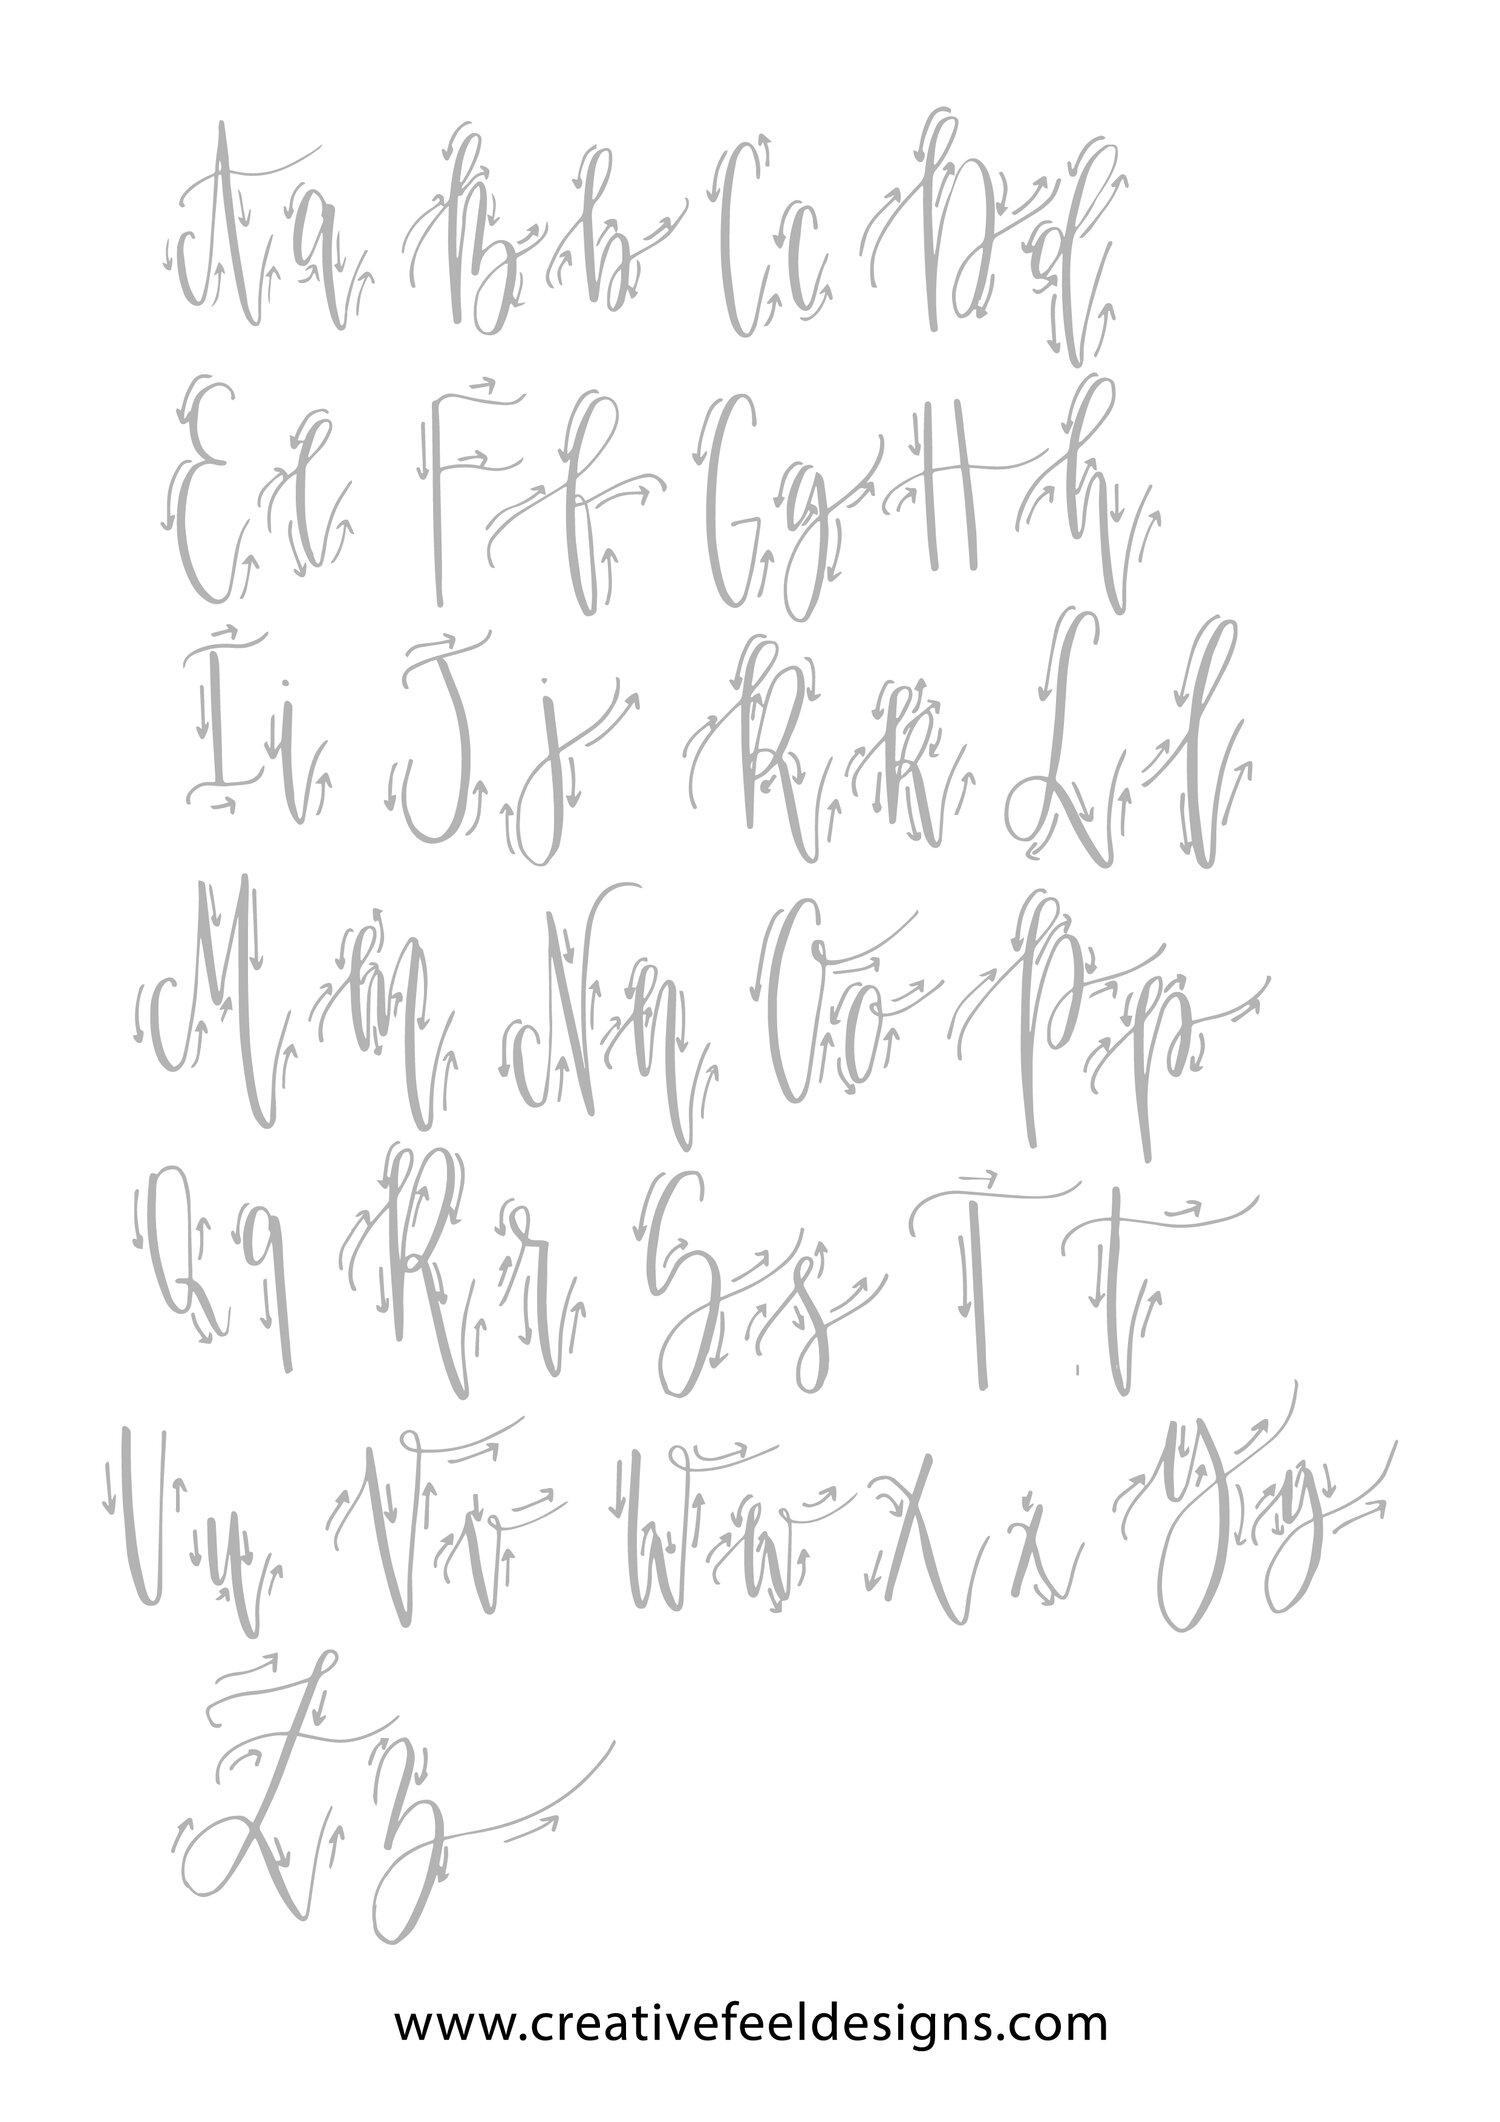 Brush Lettering Practice Sheets   Focusing on letters 's' and 'h ...